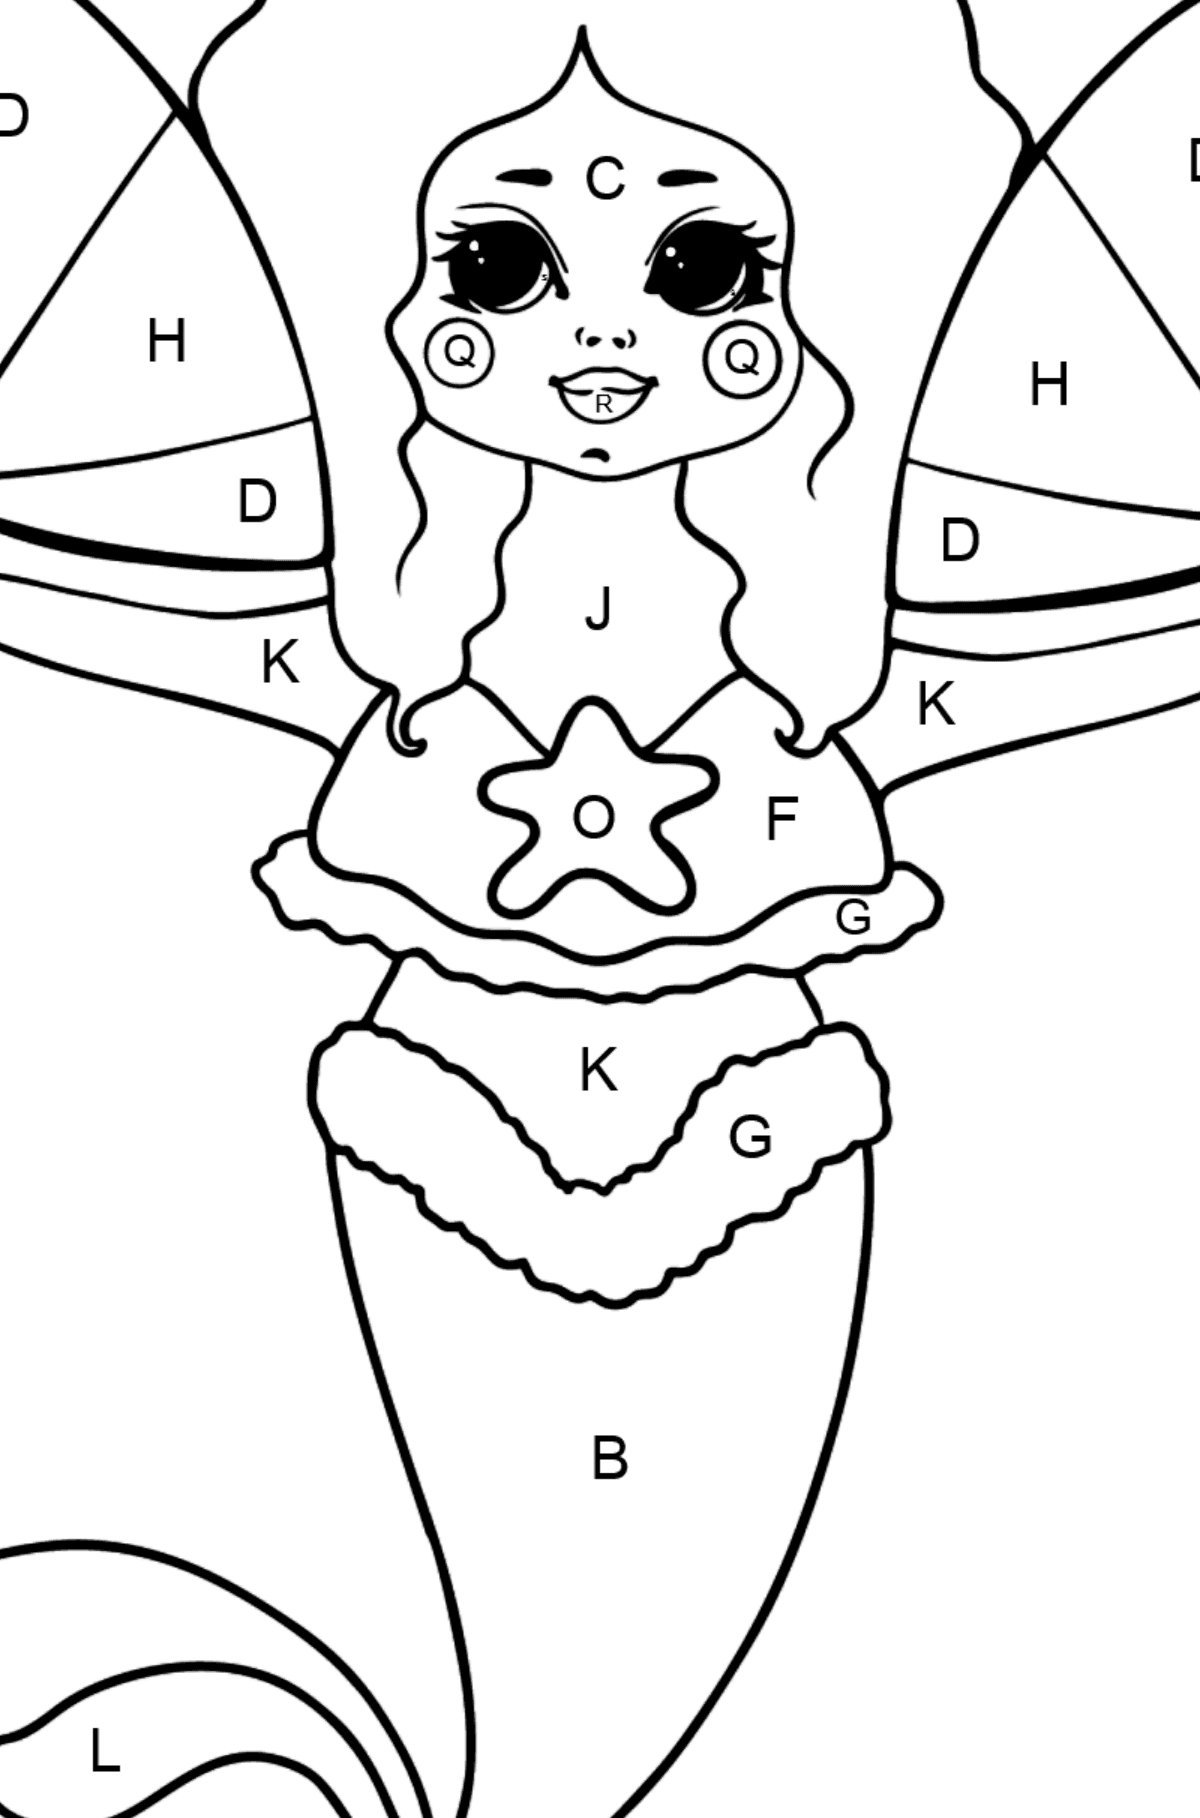 Mermaid and Two Fans coloring page - Coloring by Letters for Kids